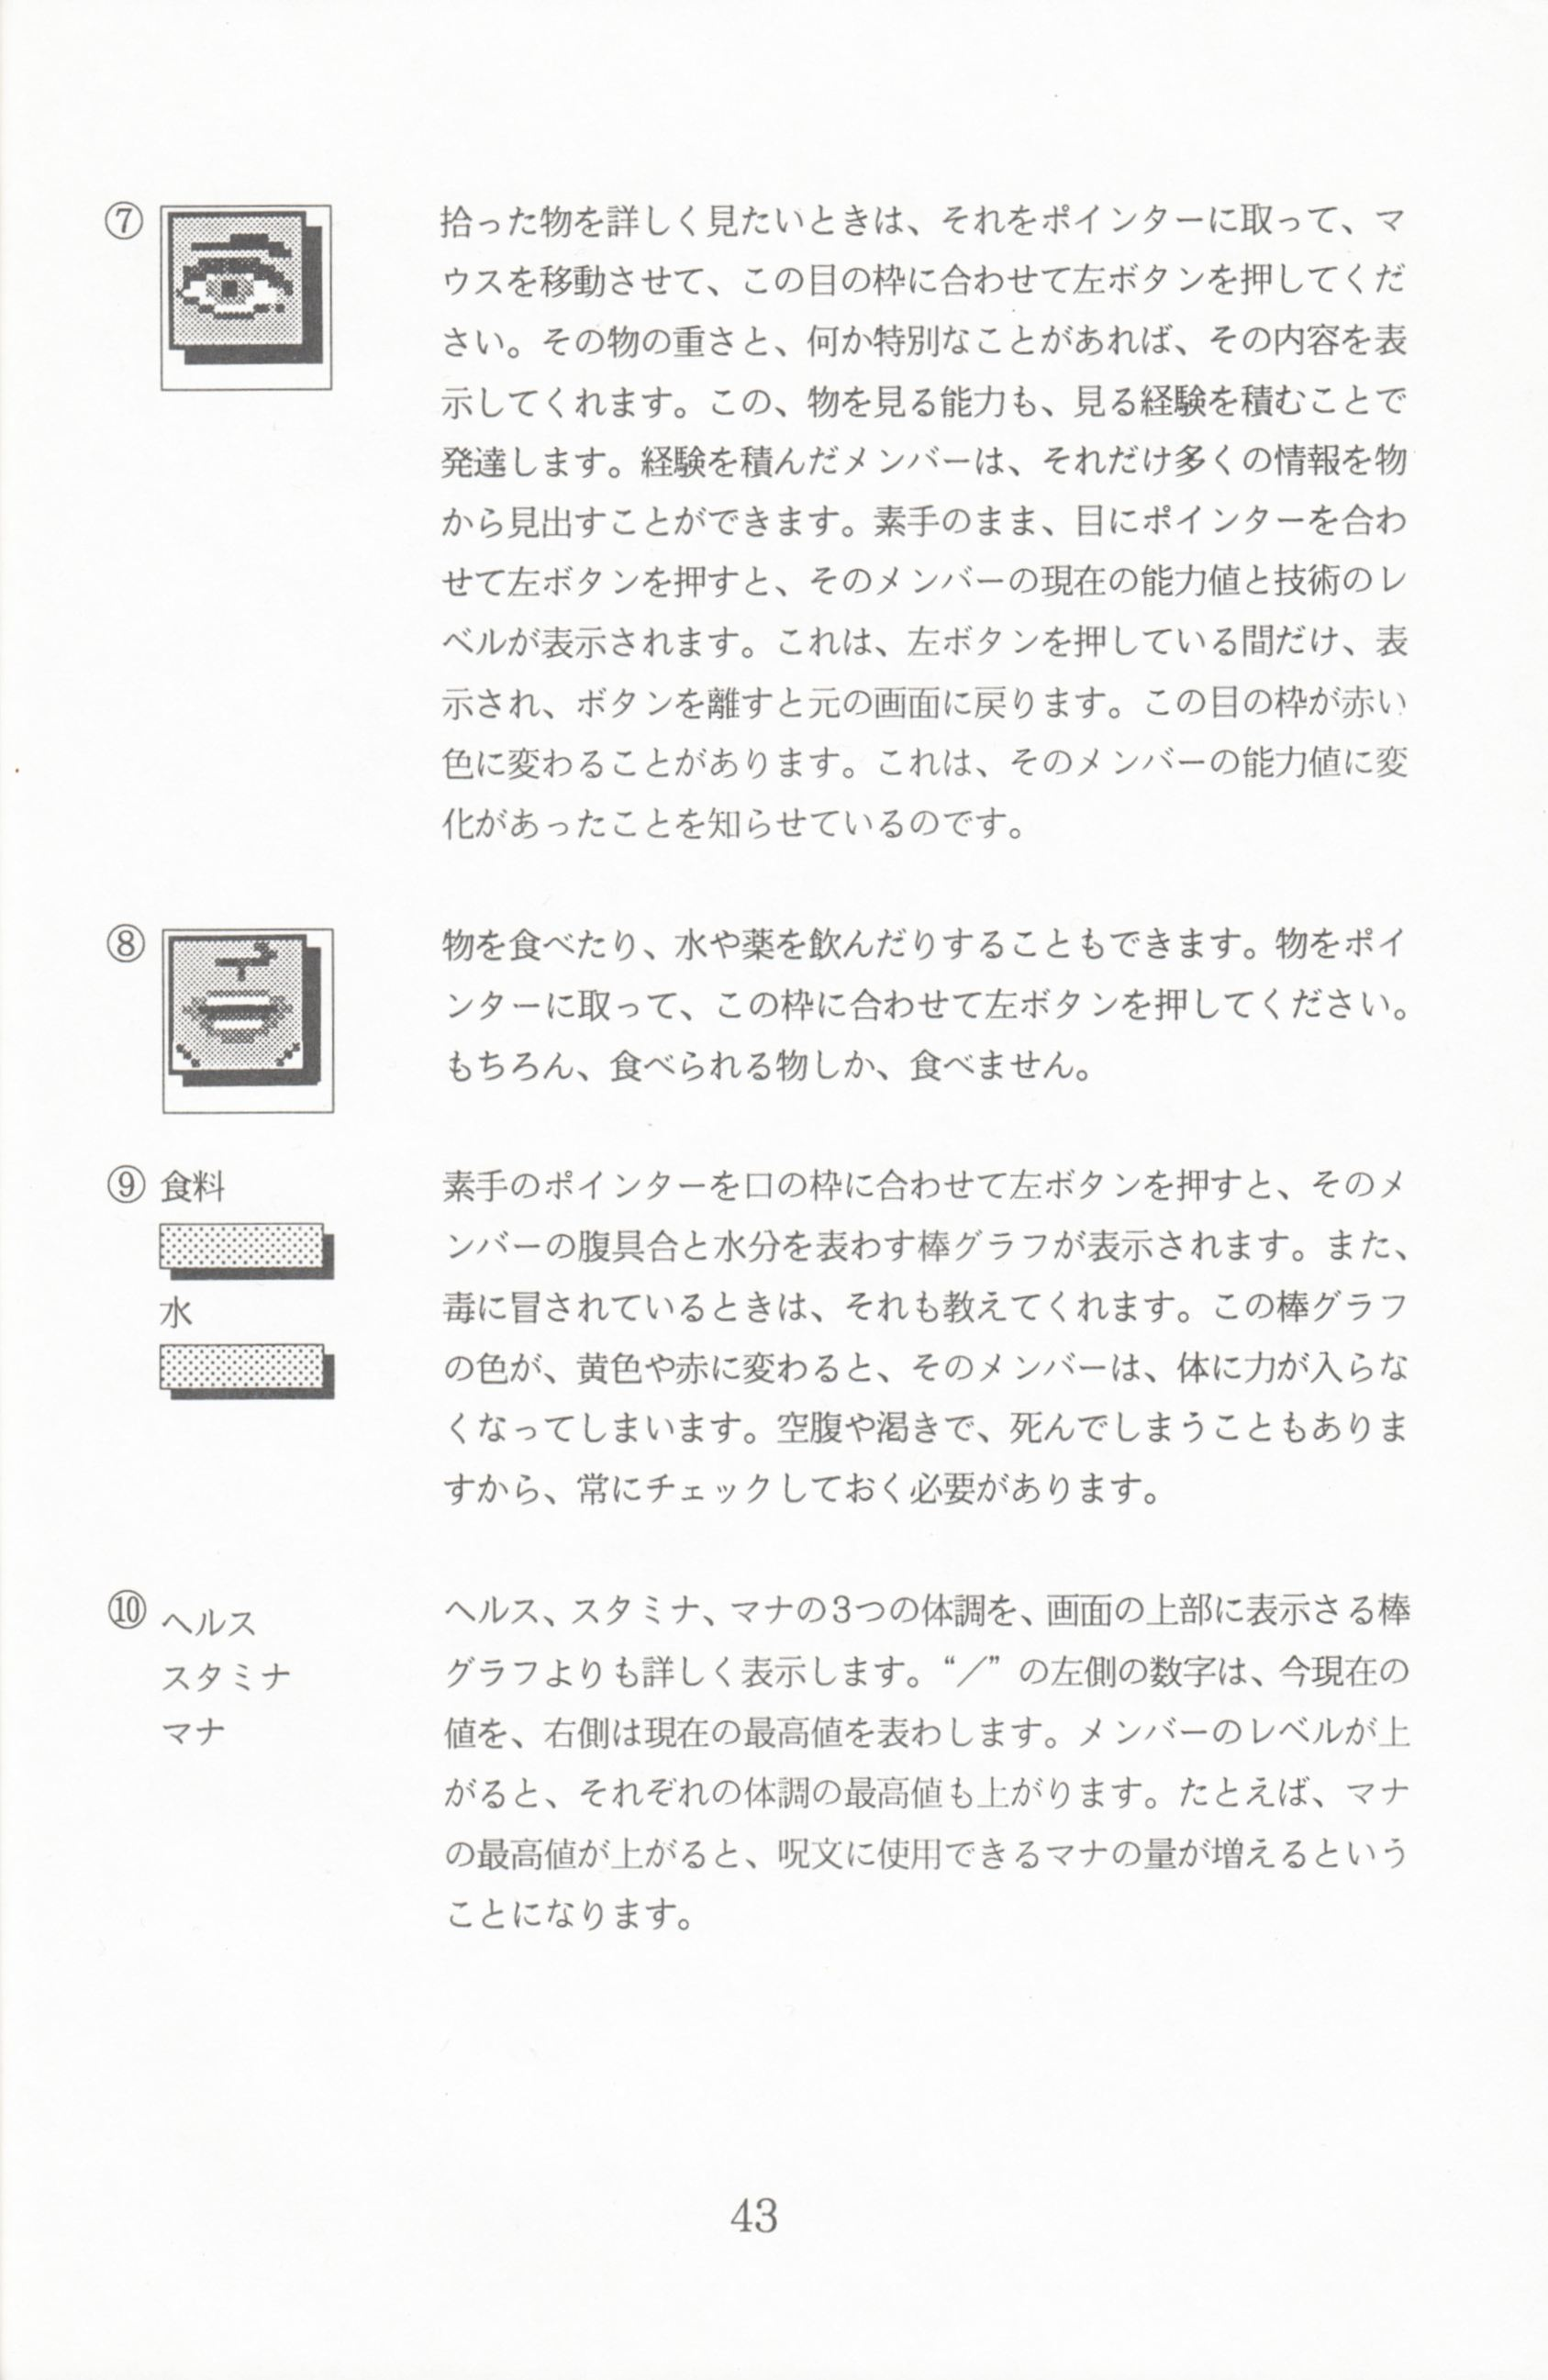 Game - Dungeon Master - JP - PC-9801 - 5.25-inch - Manual - Page 045 - Scan